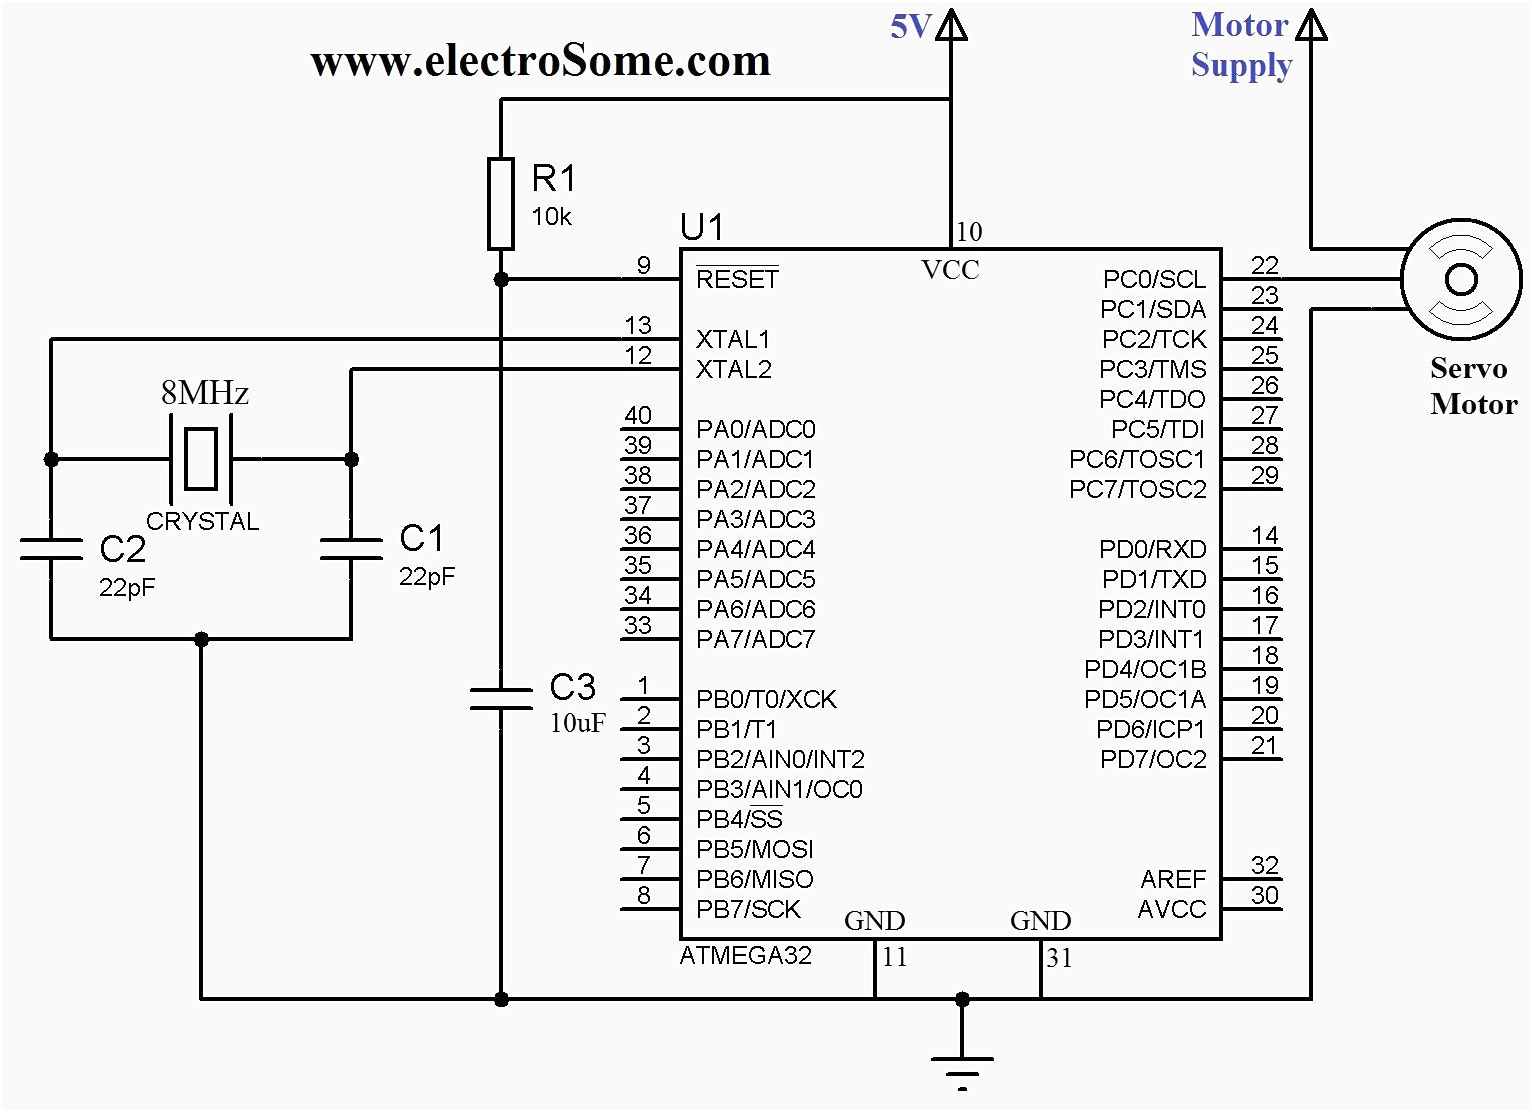 hight resolution of ge furnace blower motor wiring diagram download ao smith furnace blower motor wiring diagram at download wiring diagram images detail name ge furnace